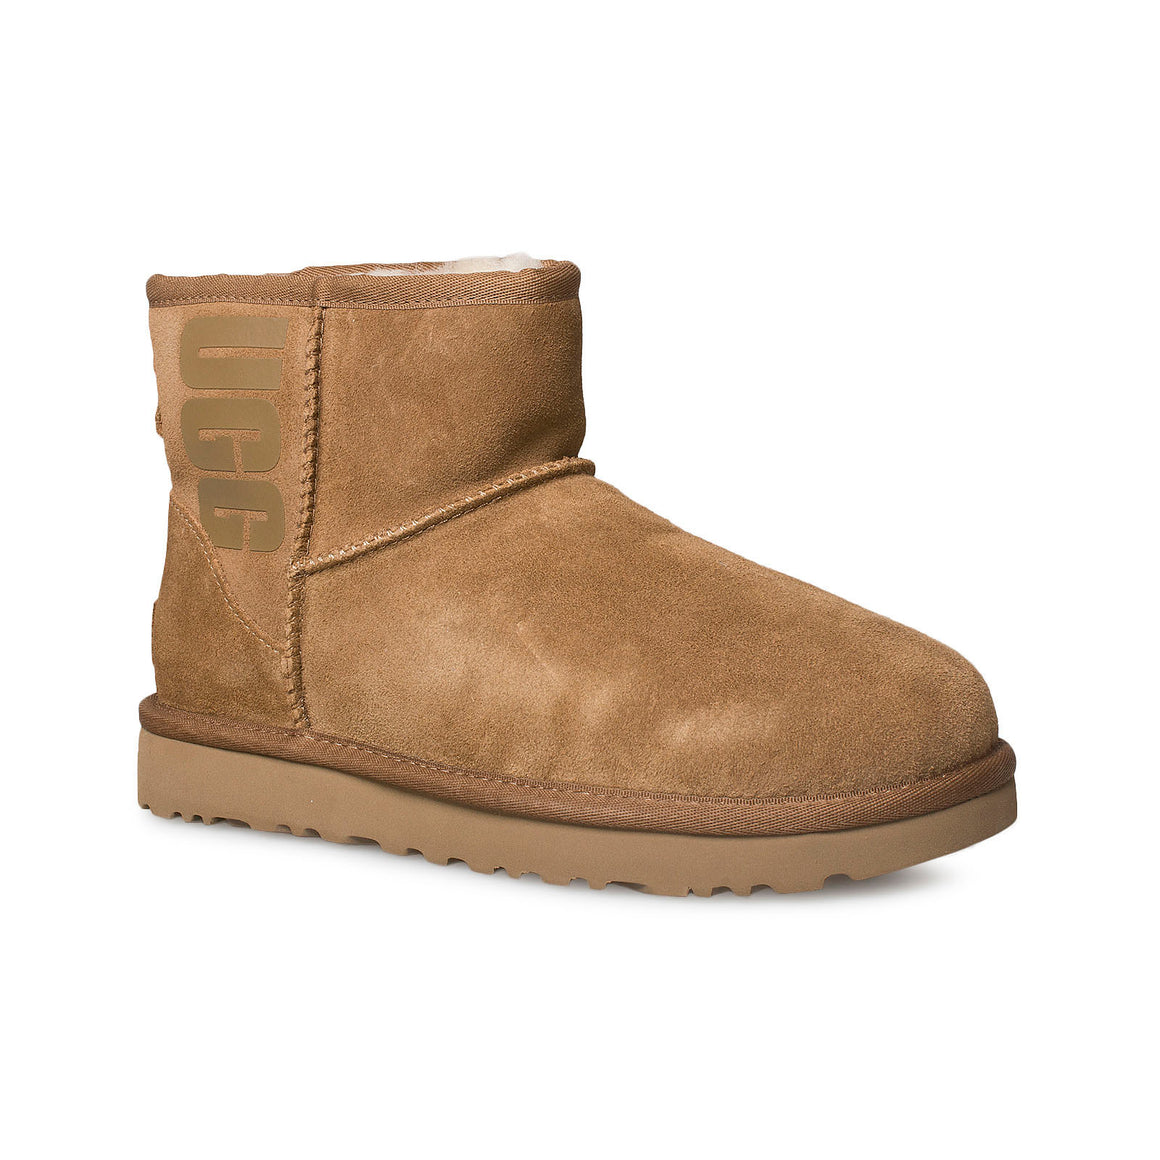 UGG Classic Mini UGG Rubber Logo Chestnut Boots - Women's